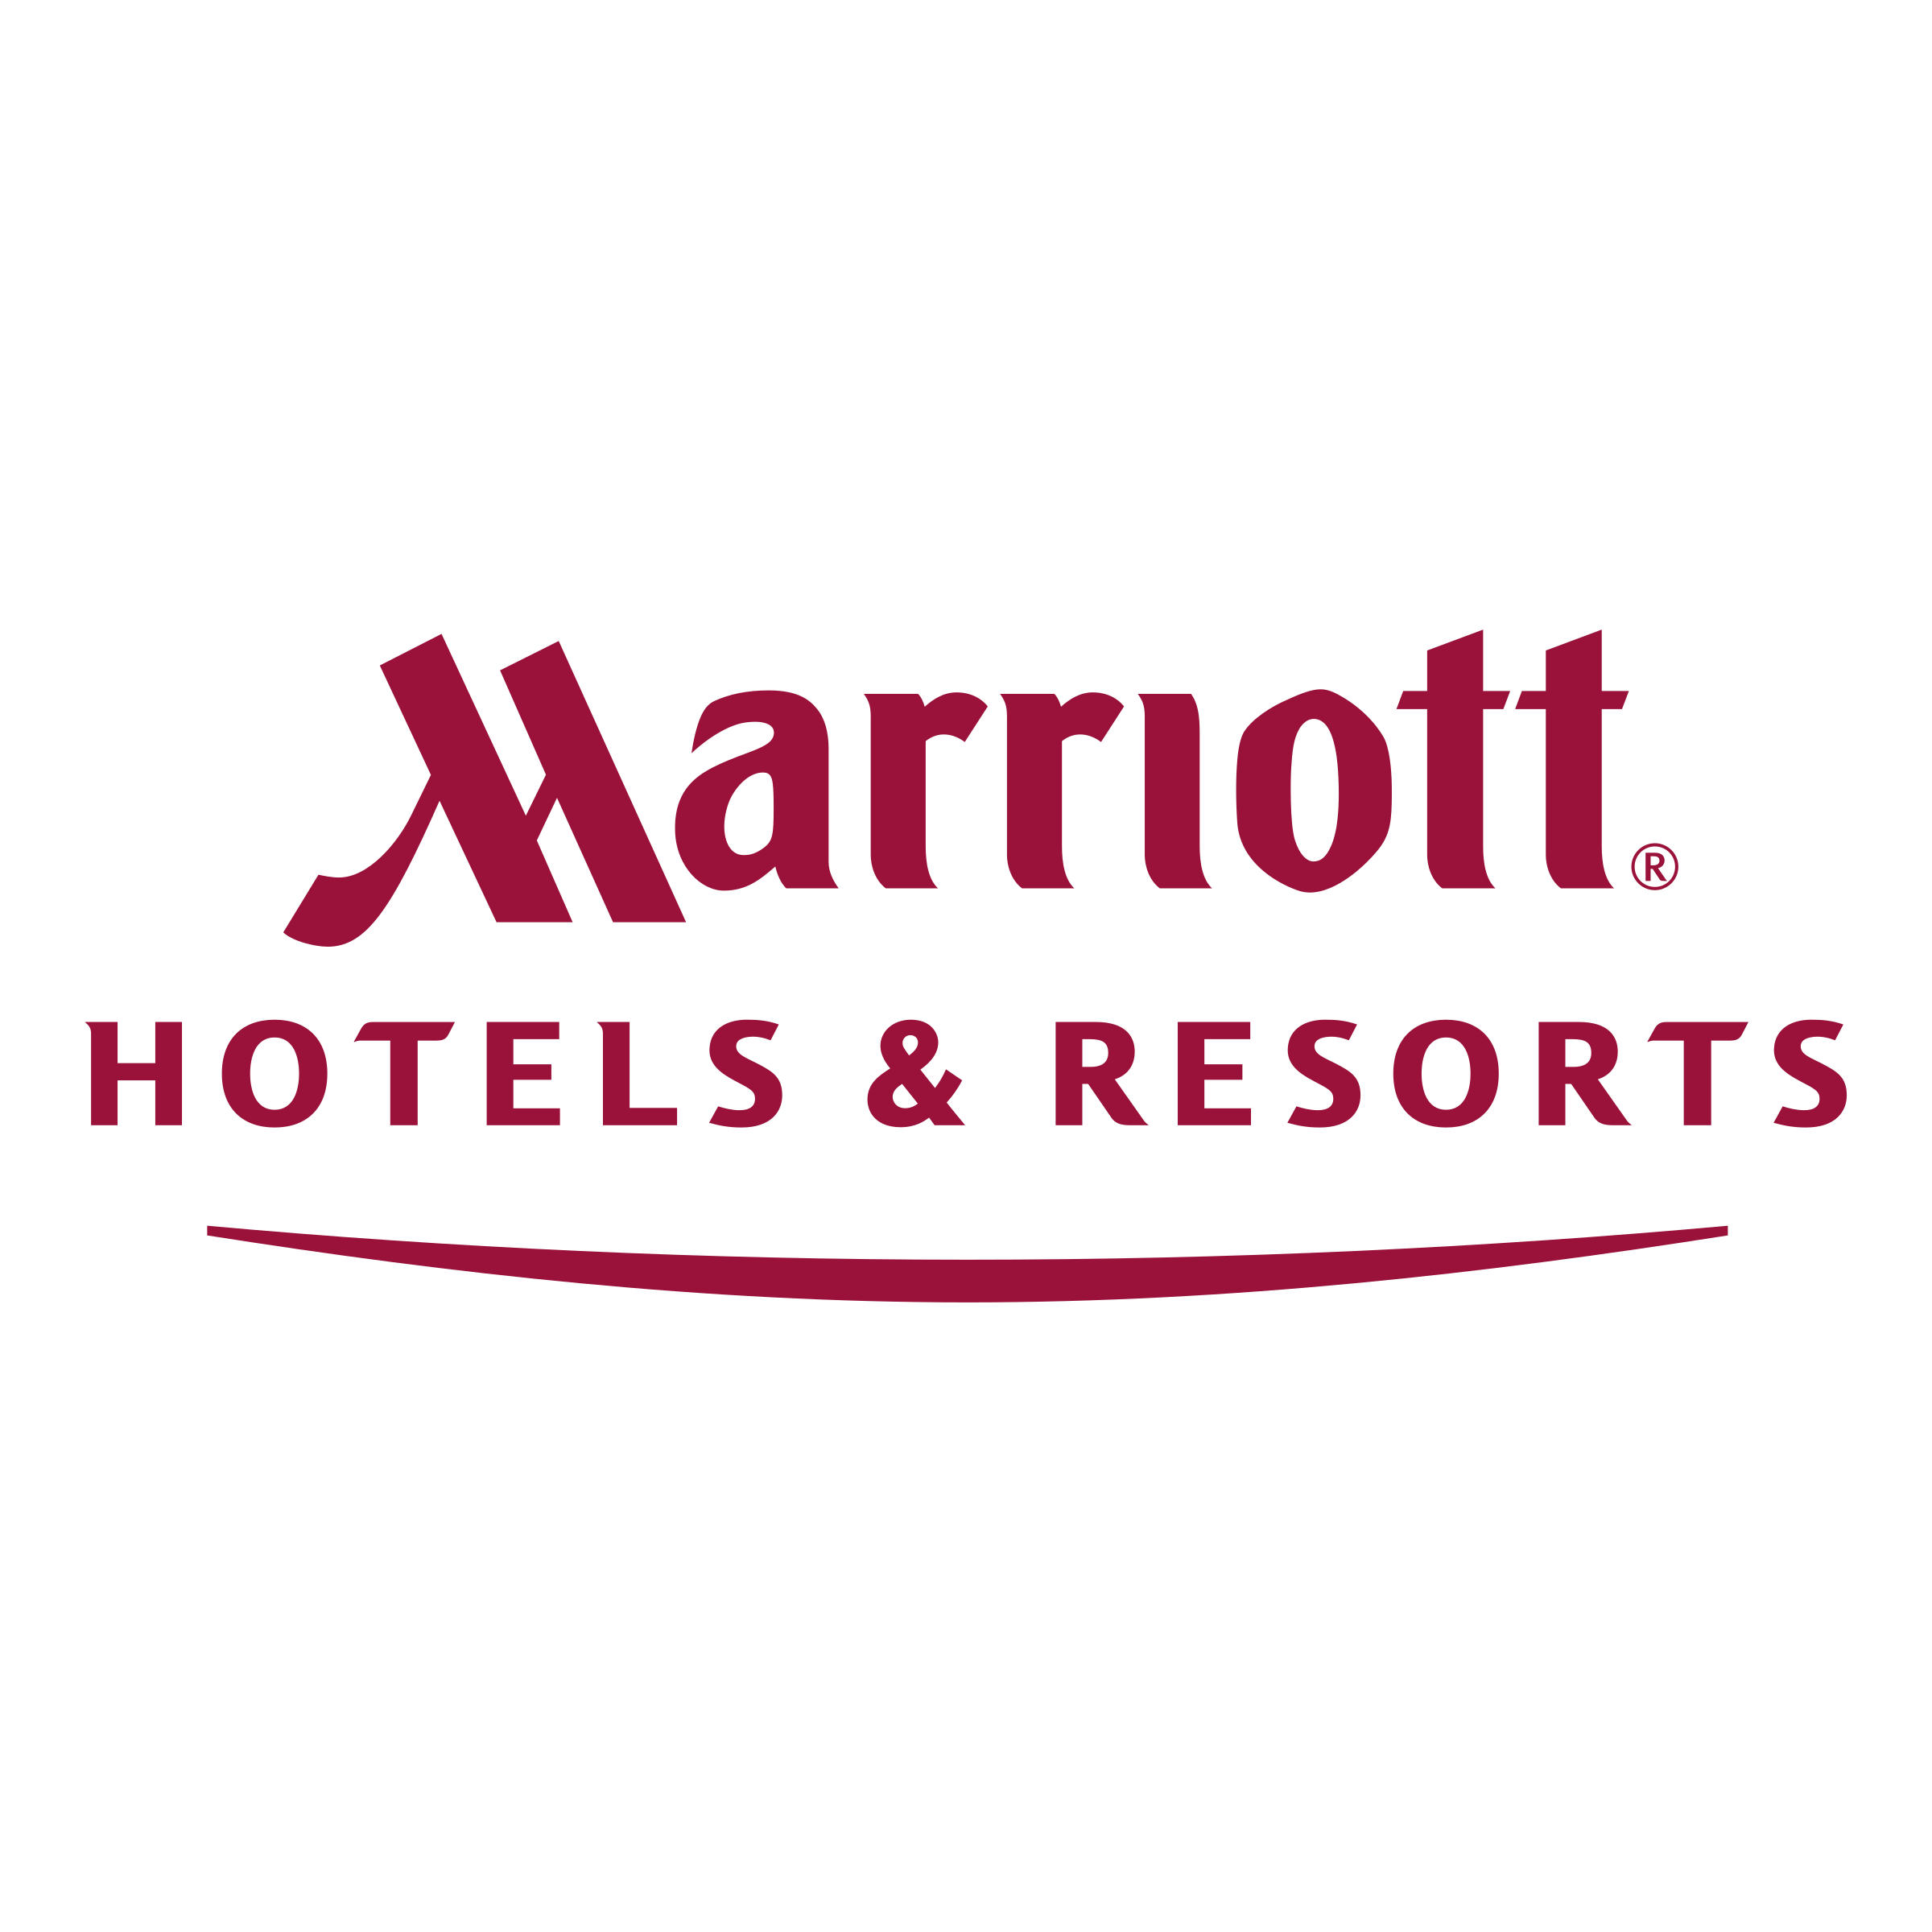 marriott-hotels-resorts-logo-png-transparent.png